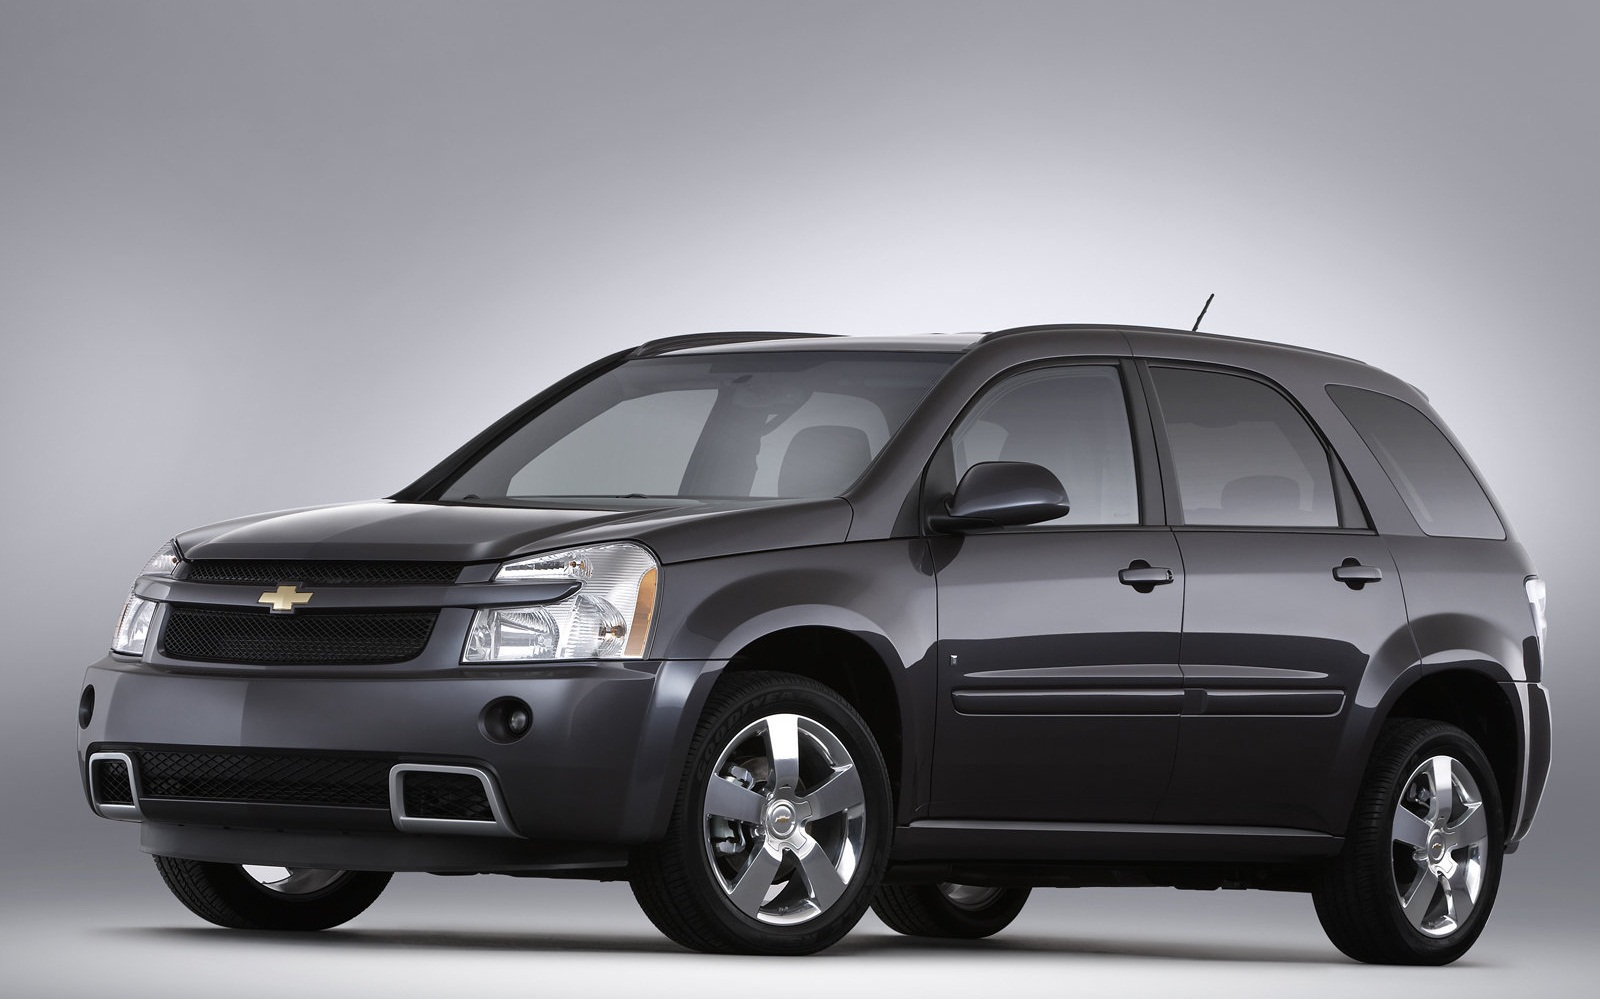 Used Chevy Equinox >> 2008 Chevrolet Equinox - fixcars - Cars News Reviews New Used updates road tests and information ...